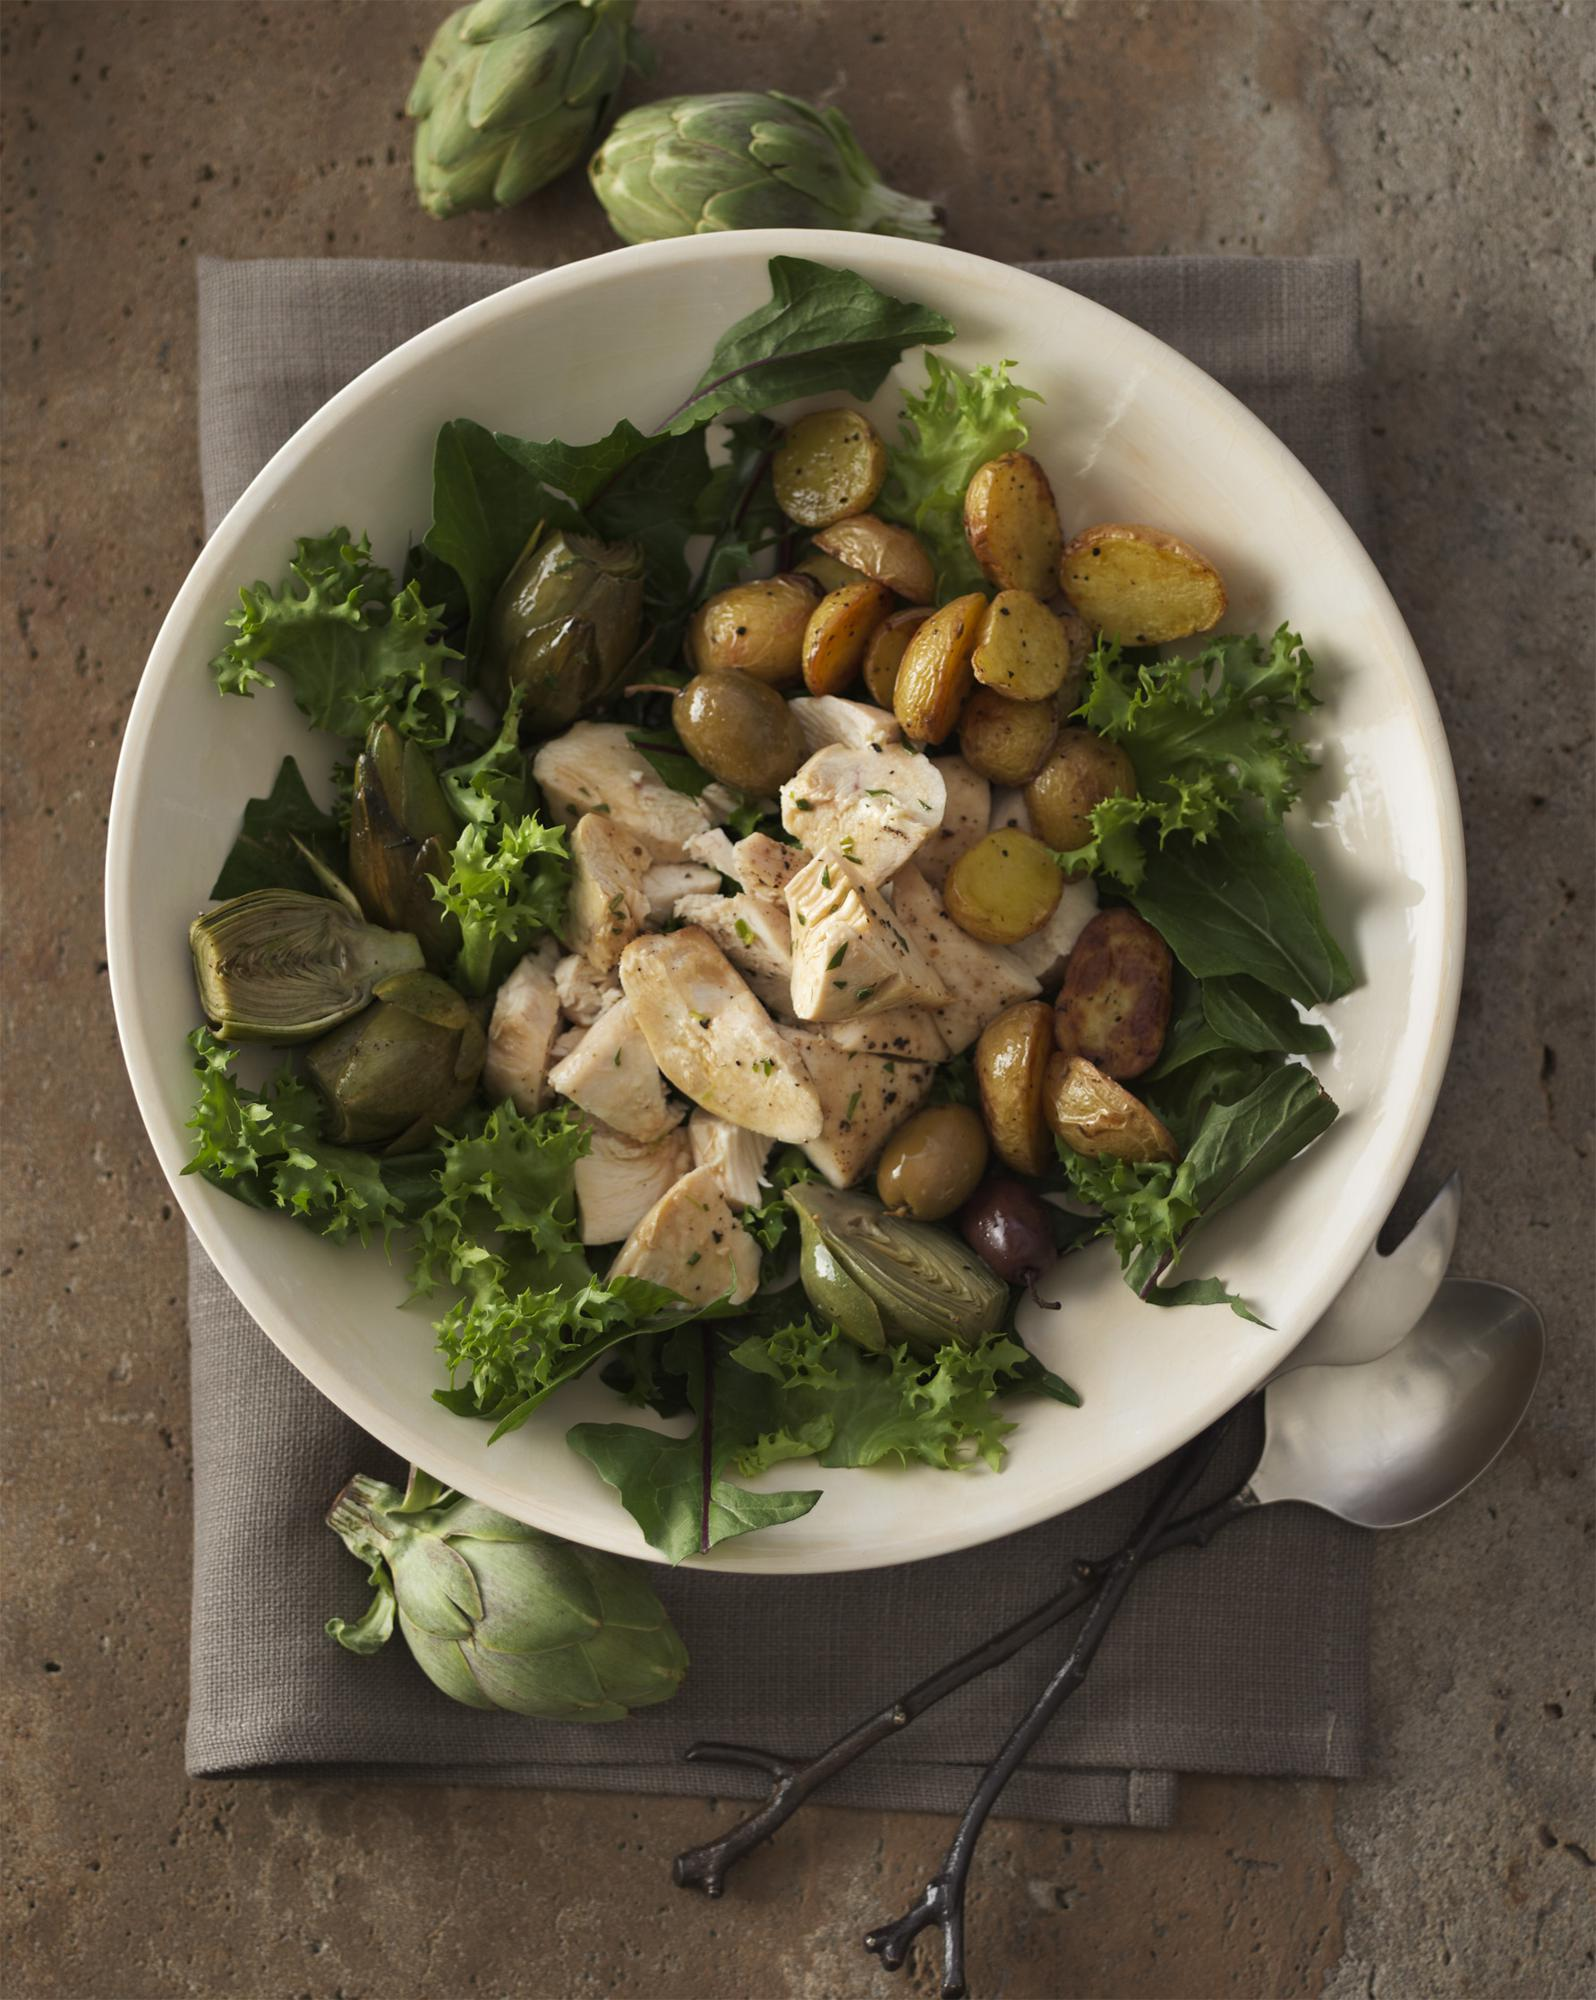 Chicken Artichoke Salad with Roasted Potatoes